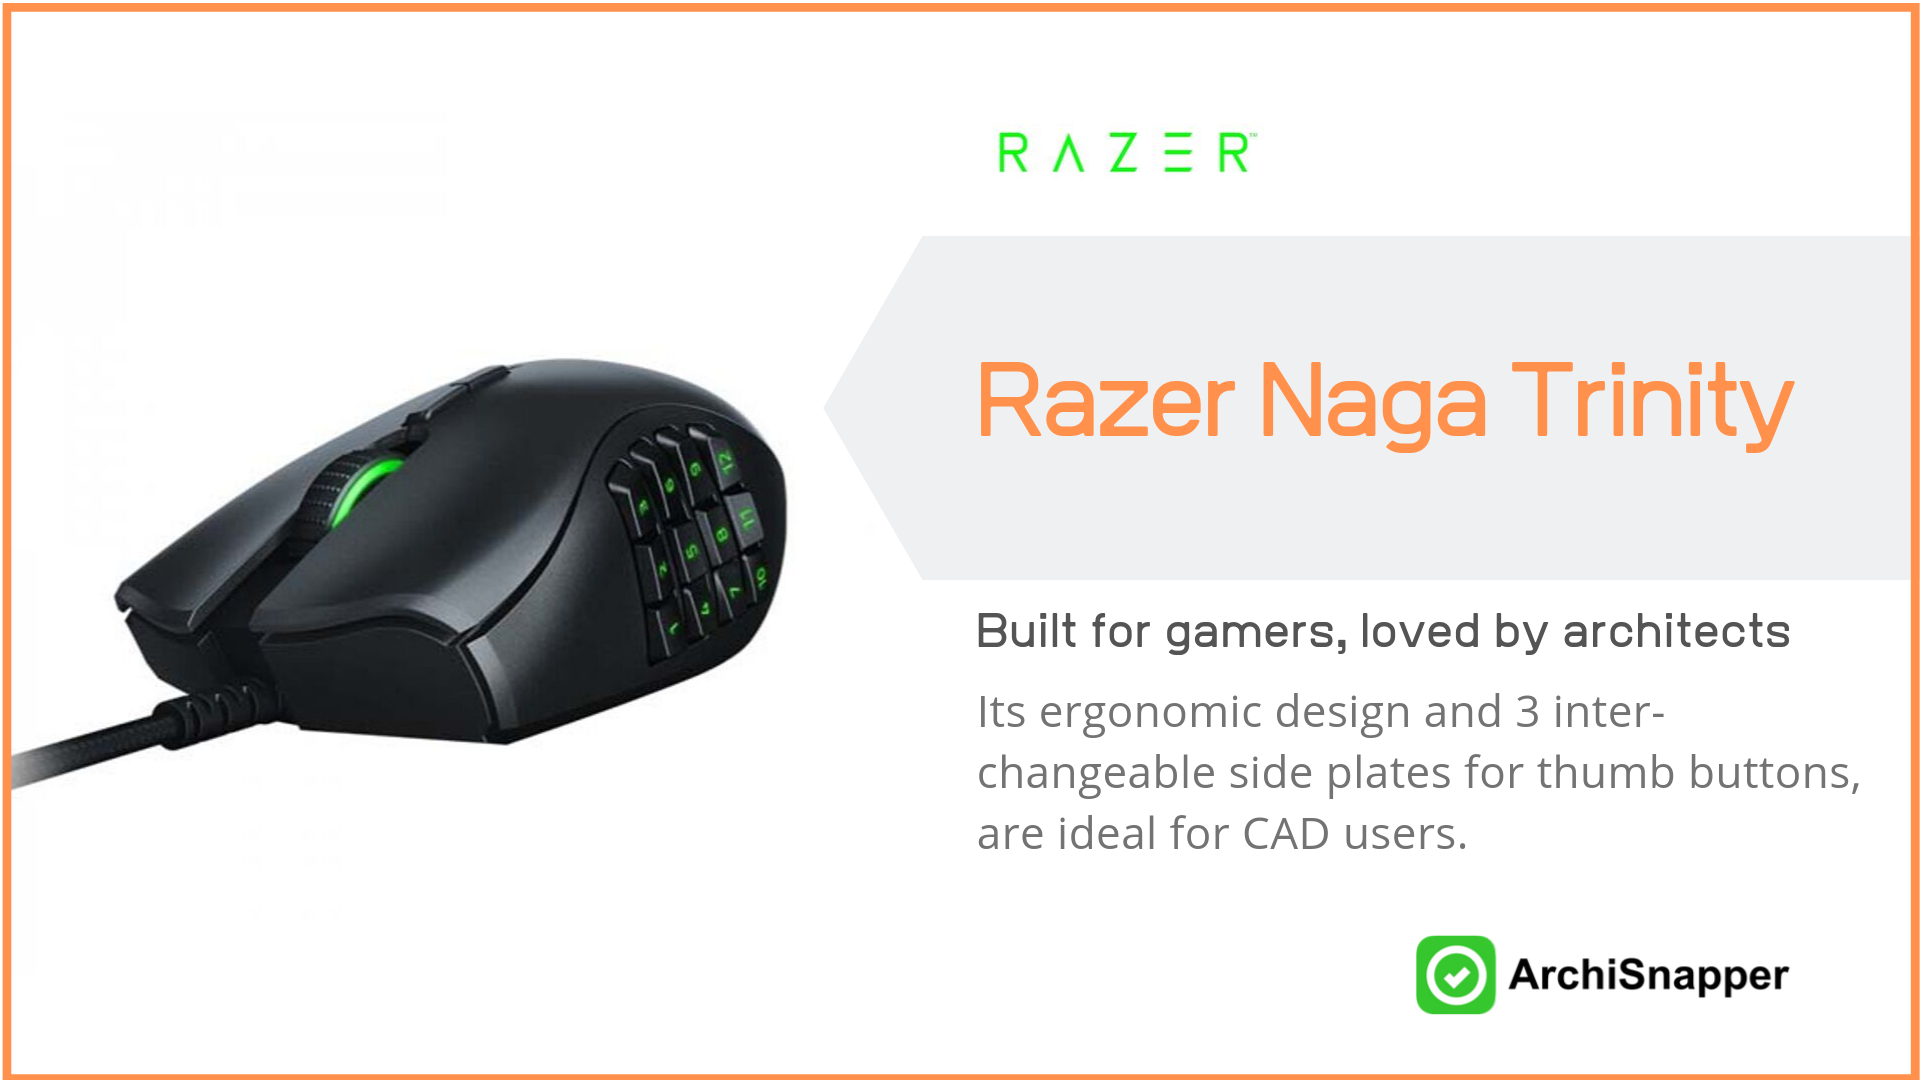 Razer Naga Trinity | List of the 15 must-have tech tools and accessories ideal for architects presented by Archisnapper